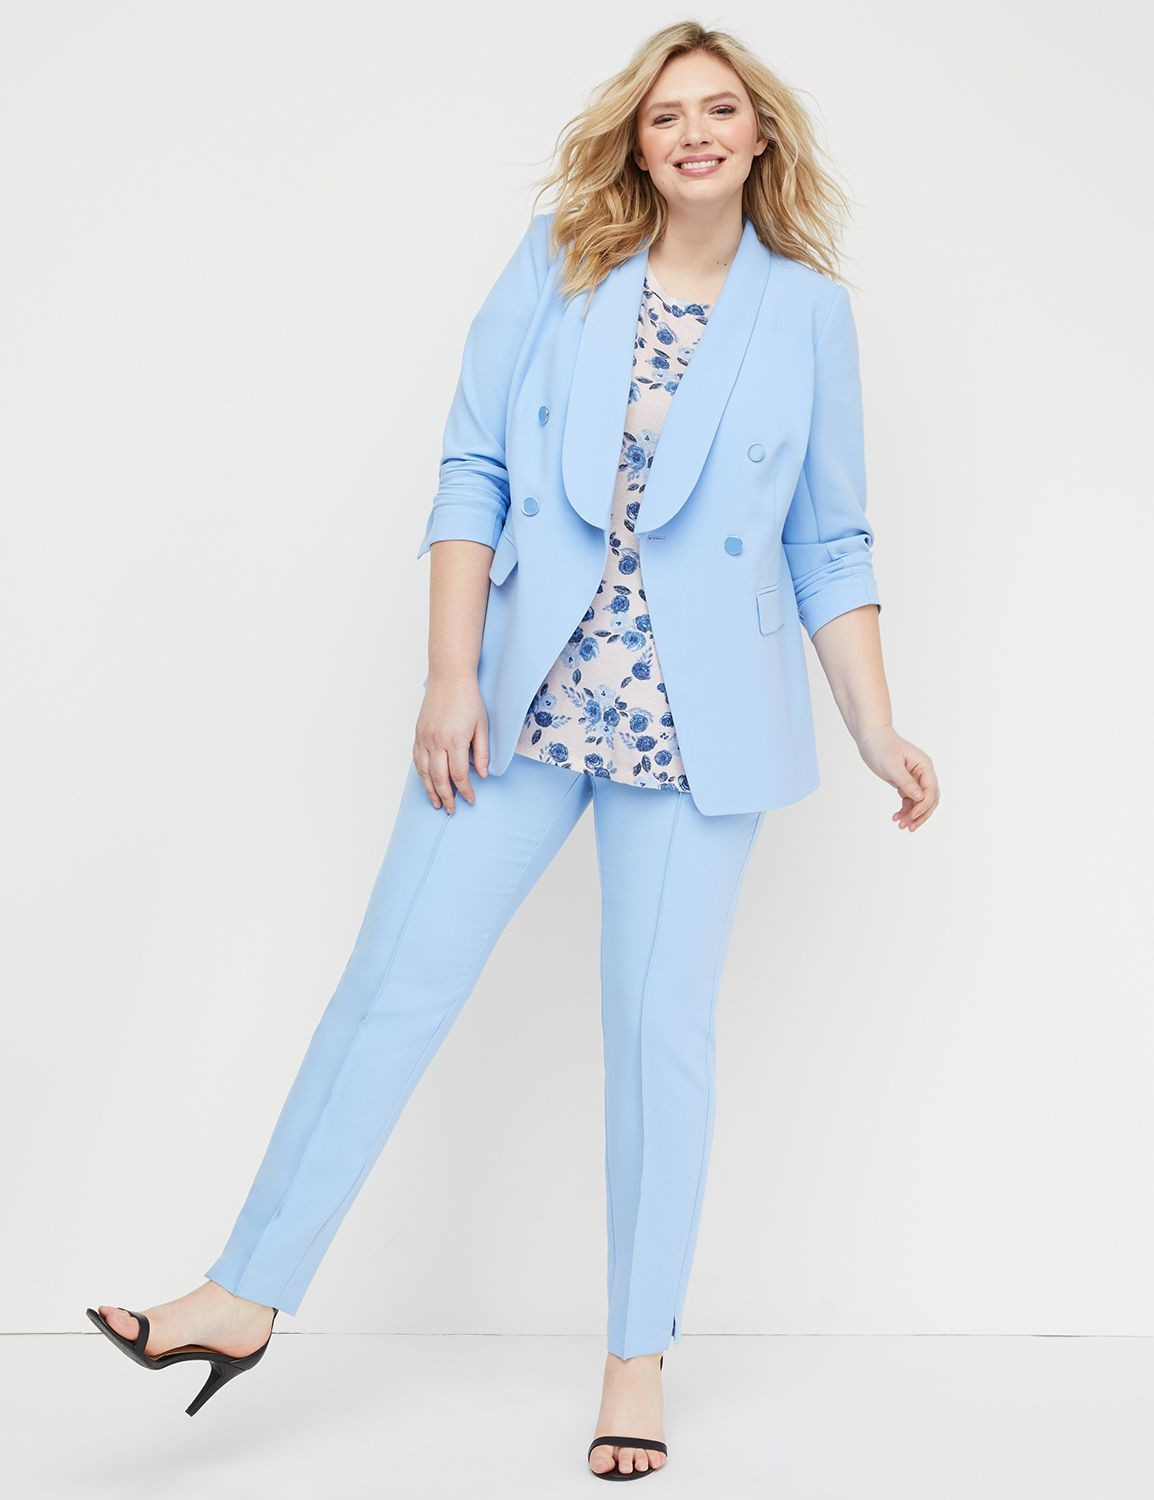 Find these lane bryant suits, Plus-size clothing